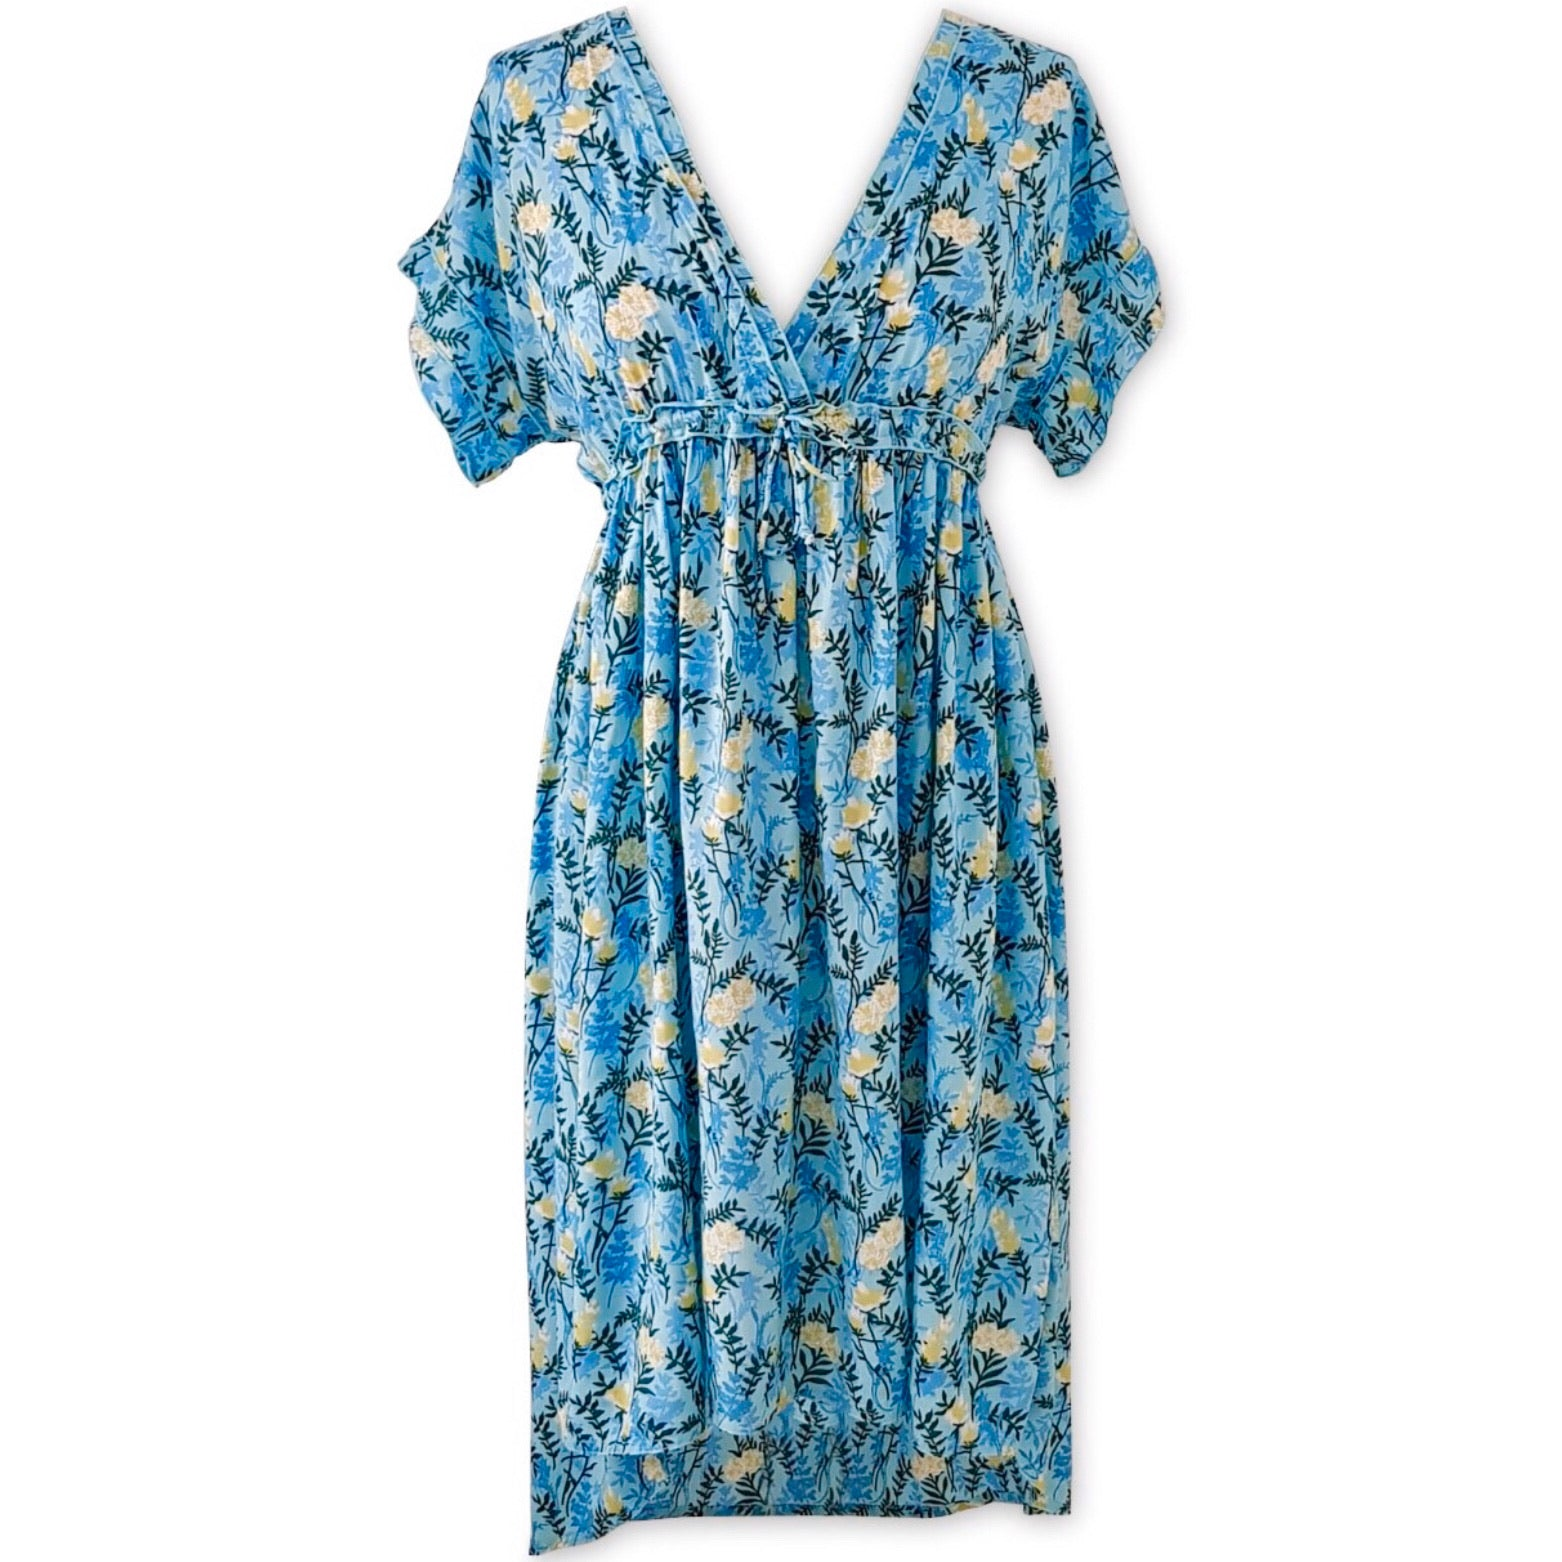 Chloe Midi Dress Aqua Fern